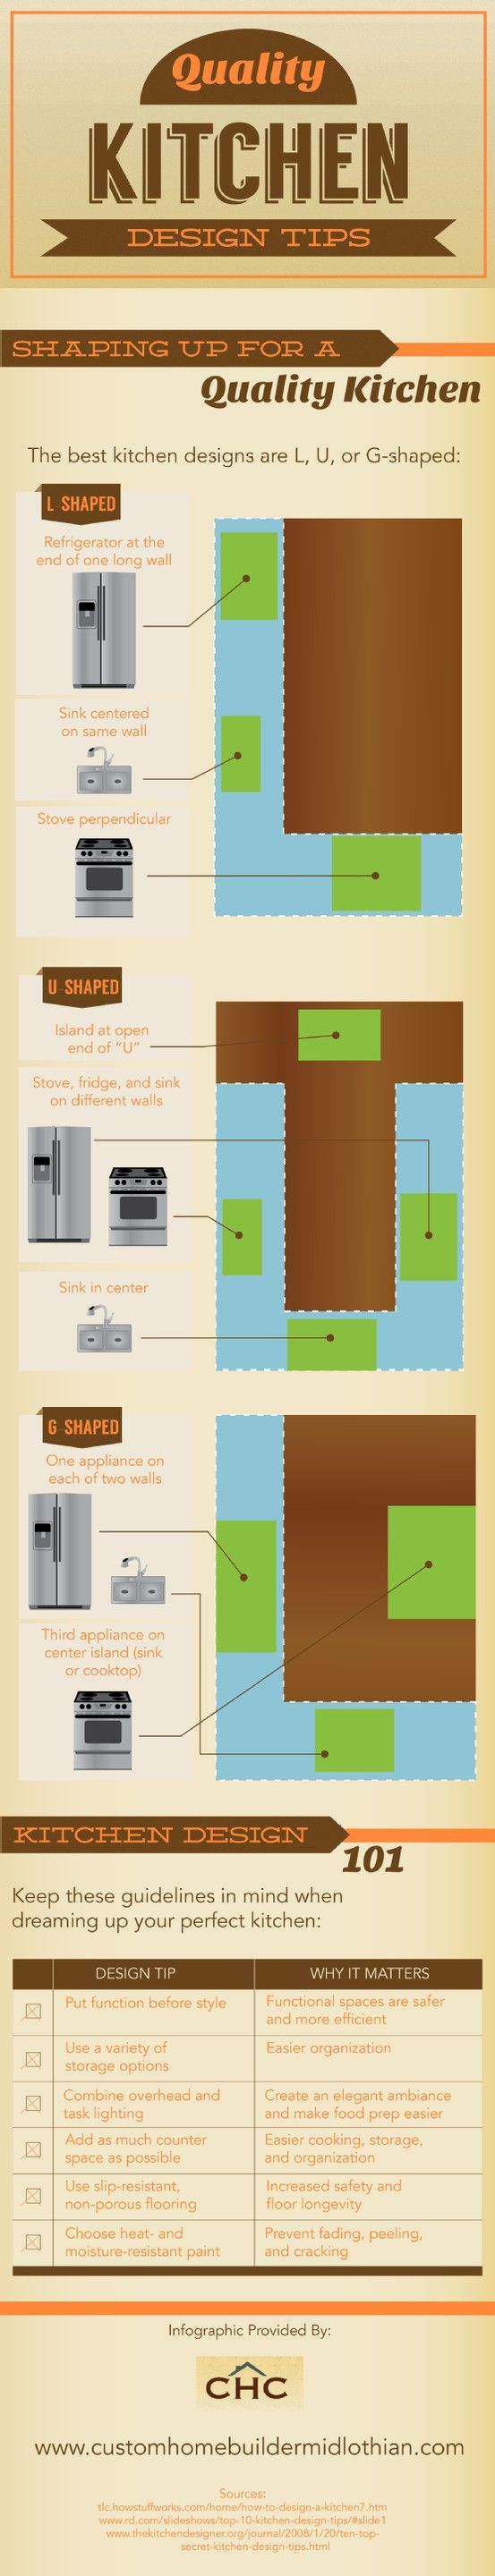 In an L-shaped kitchen, the refrigerator sits at the end of a long wall. The sink is in the center of this same wall, and the stove is perpendicular. Learn more about kitchen shapes and designs in this infographic from a home renovation company in Midlothian. Original source: http://www.customhomebuildermidlothian.com/678786/2013/04/10/quality-kitchen-design-tips-infographic.html